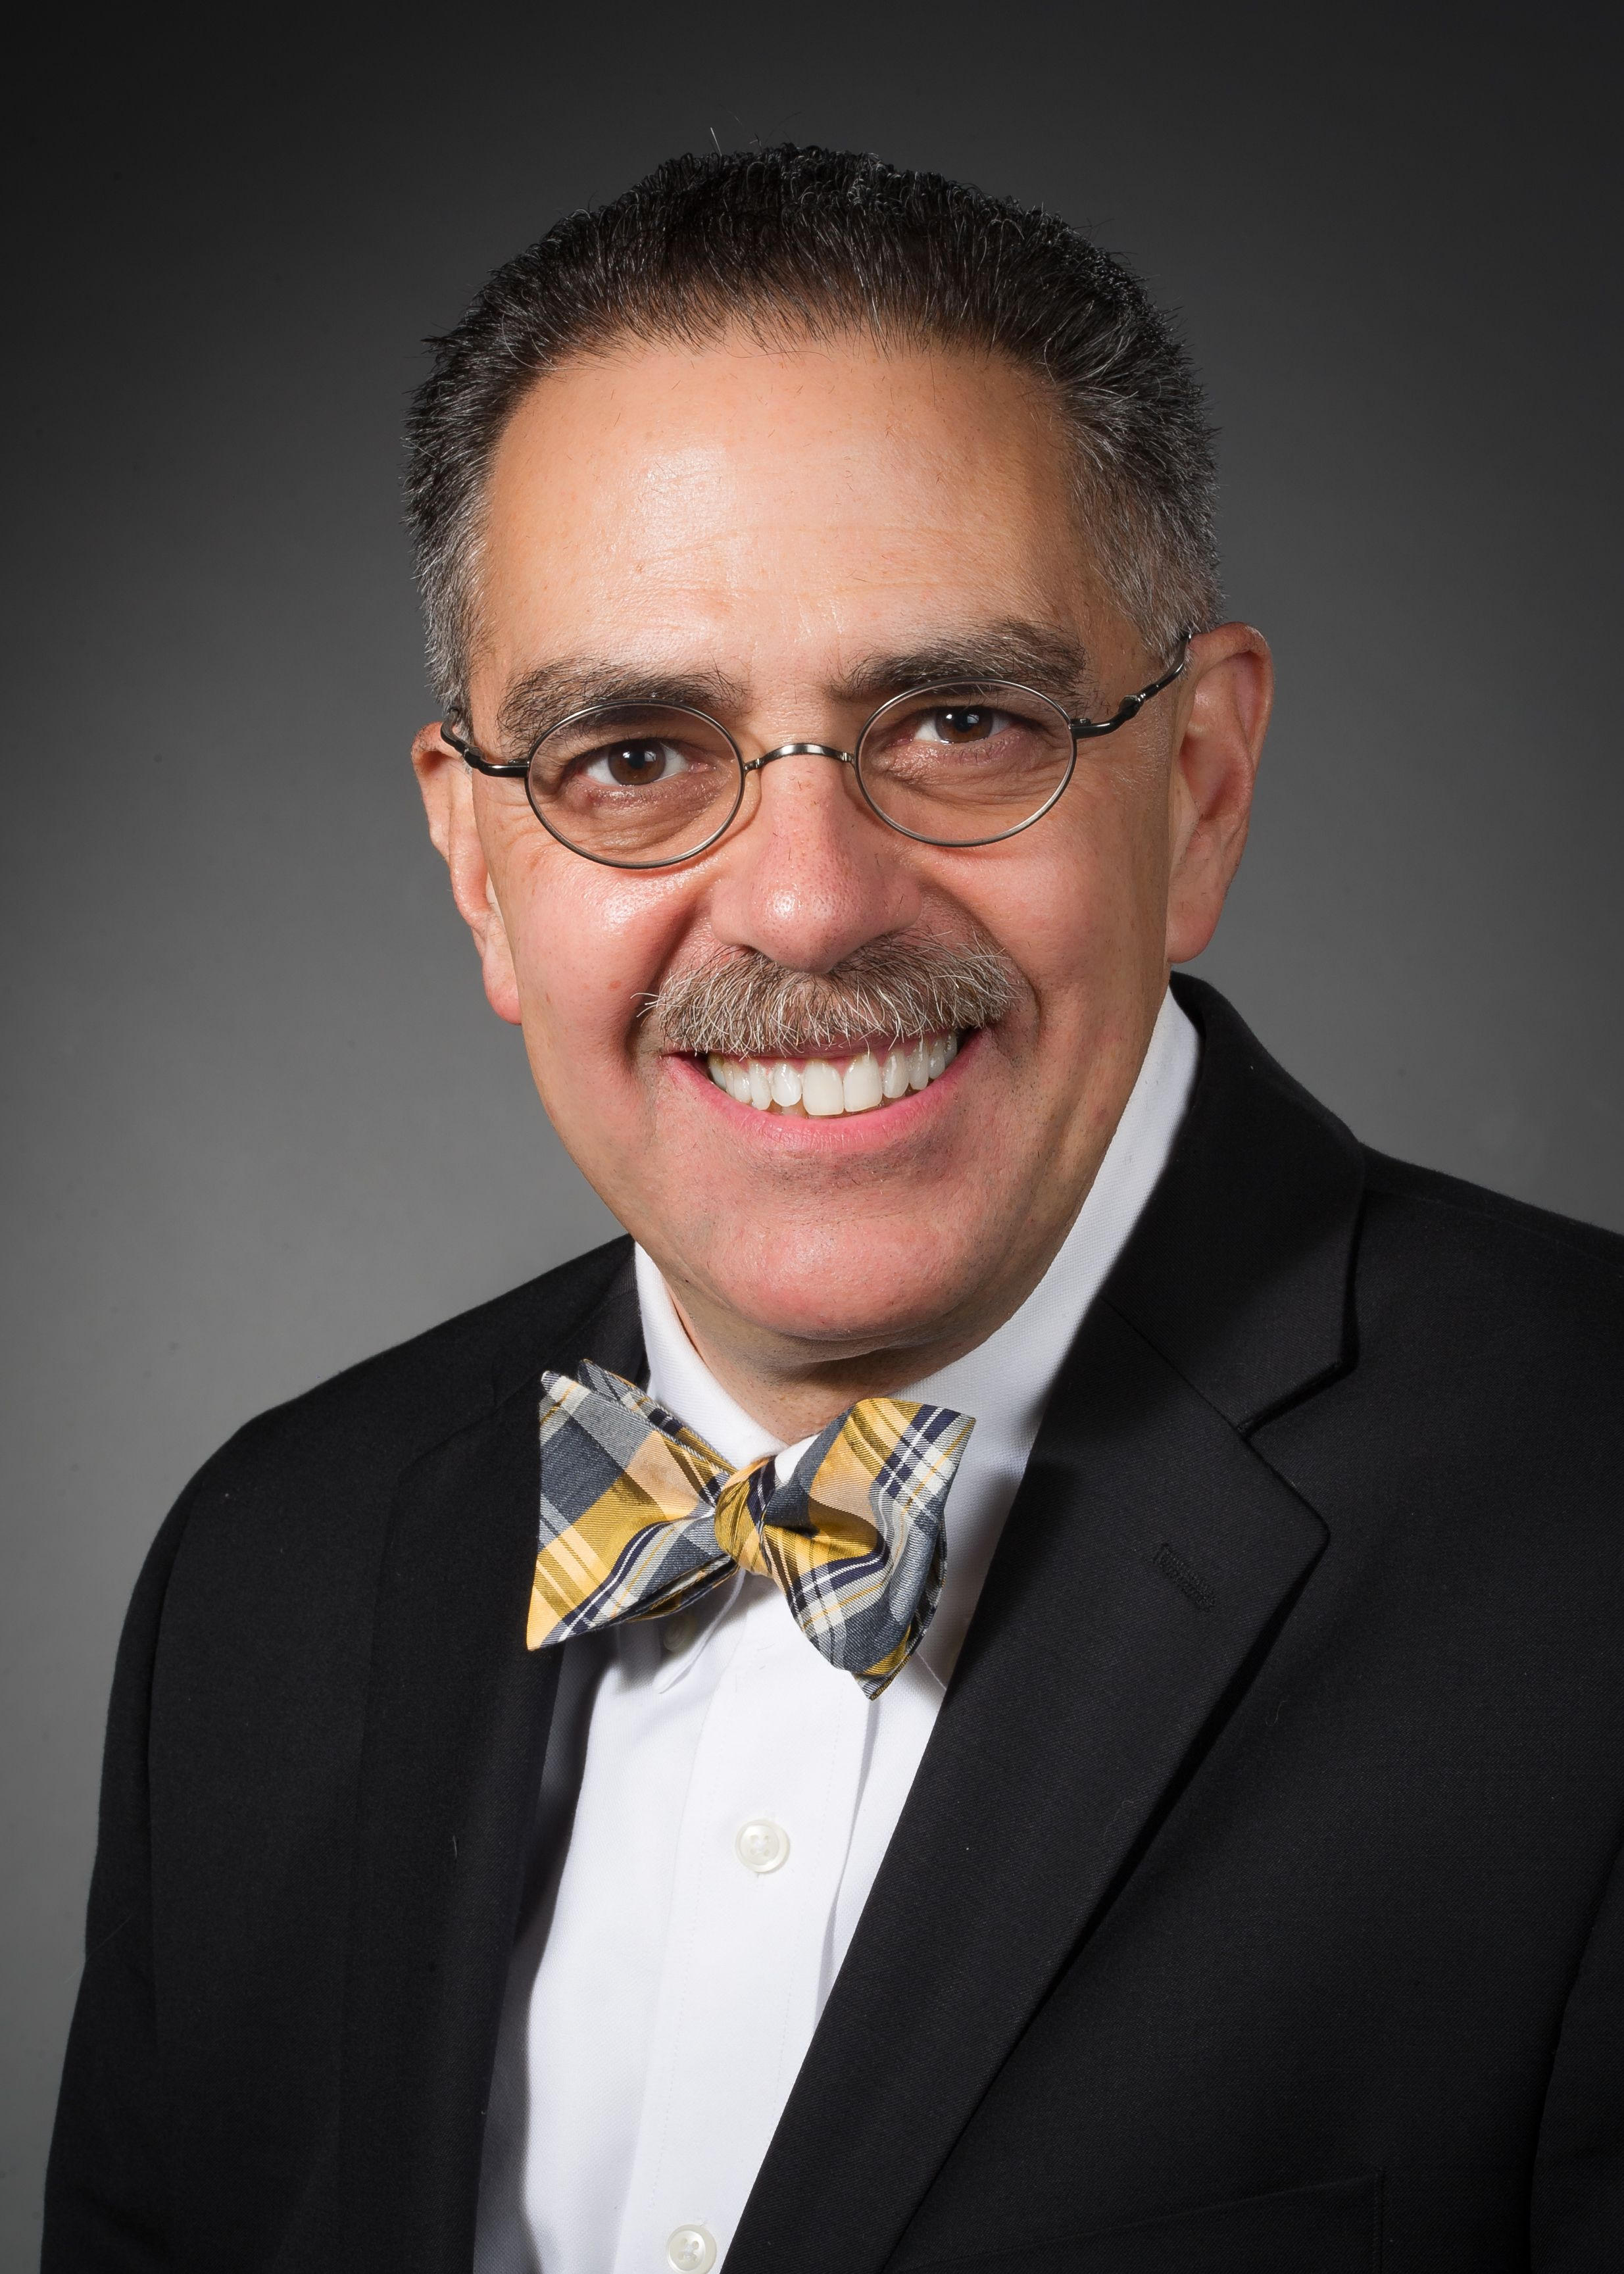 Louis Kavoussi, MD, wearing a gold and grey bowtie